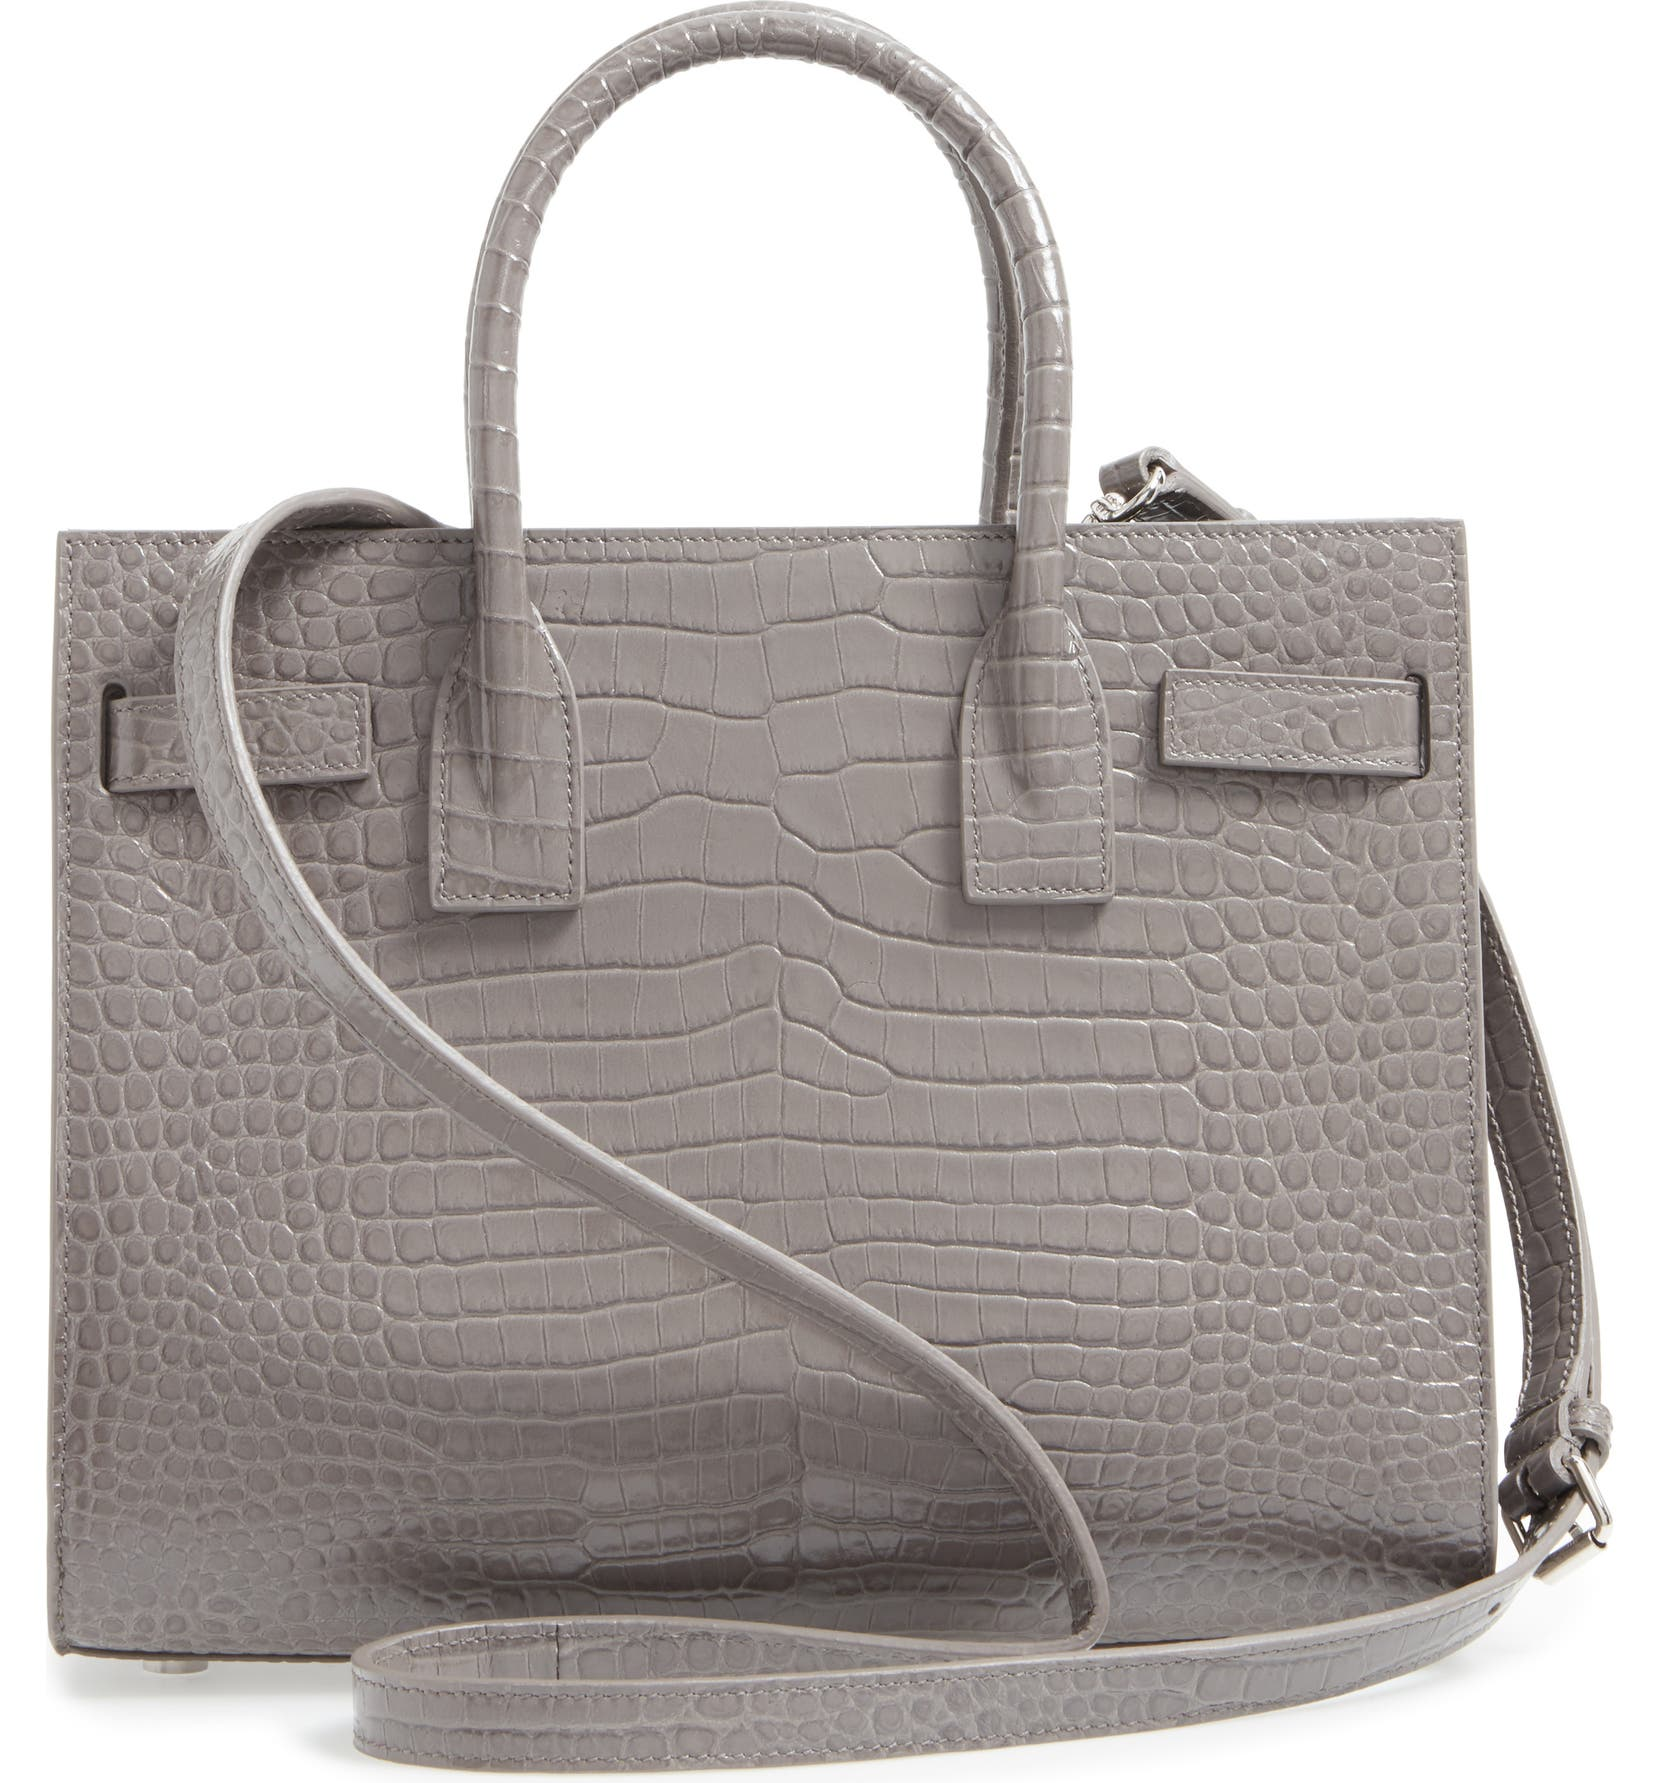 32095782edbb Saint Laurent Baby Sac de Jour Croc Embossed Calfskin Leather Tote ...